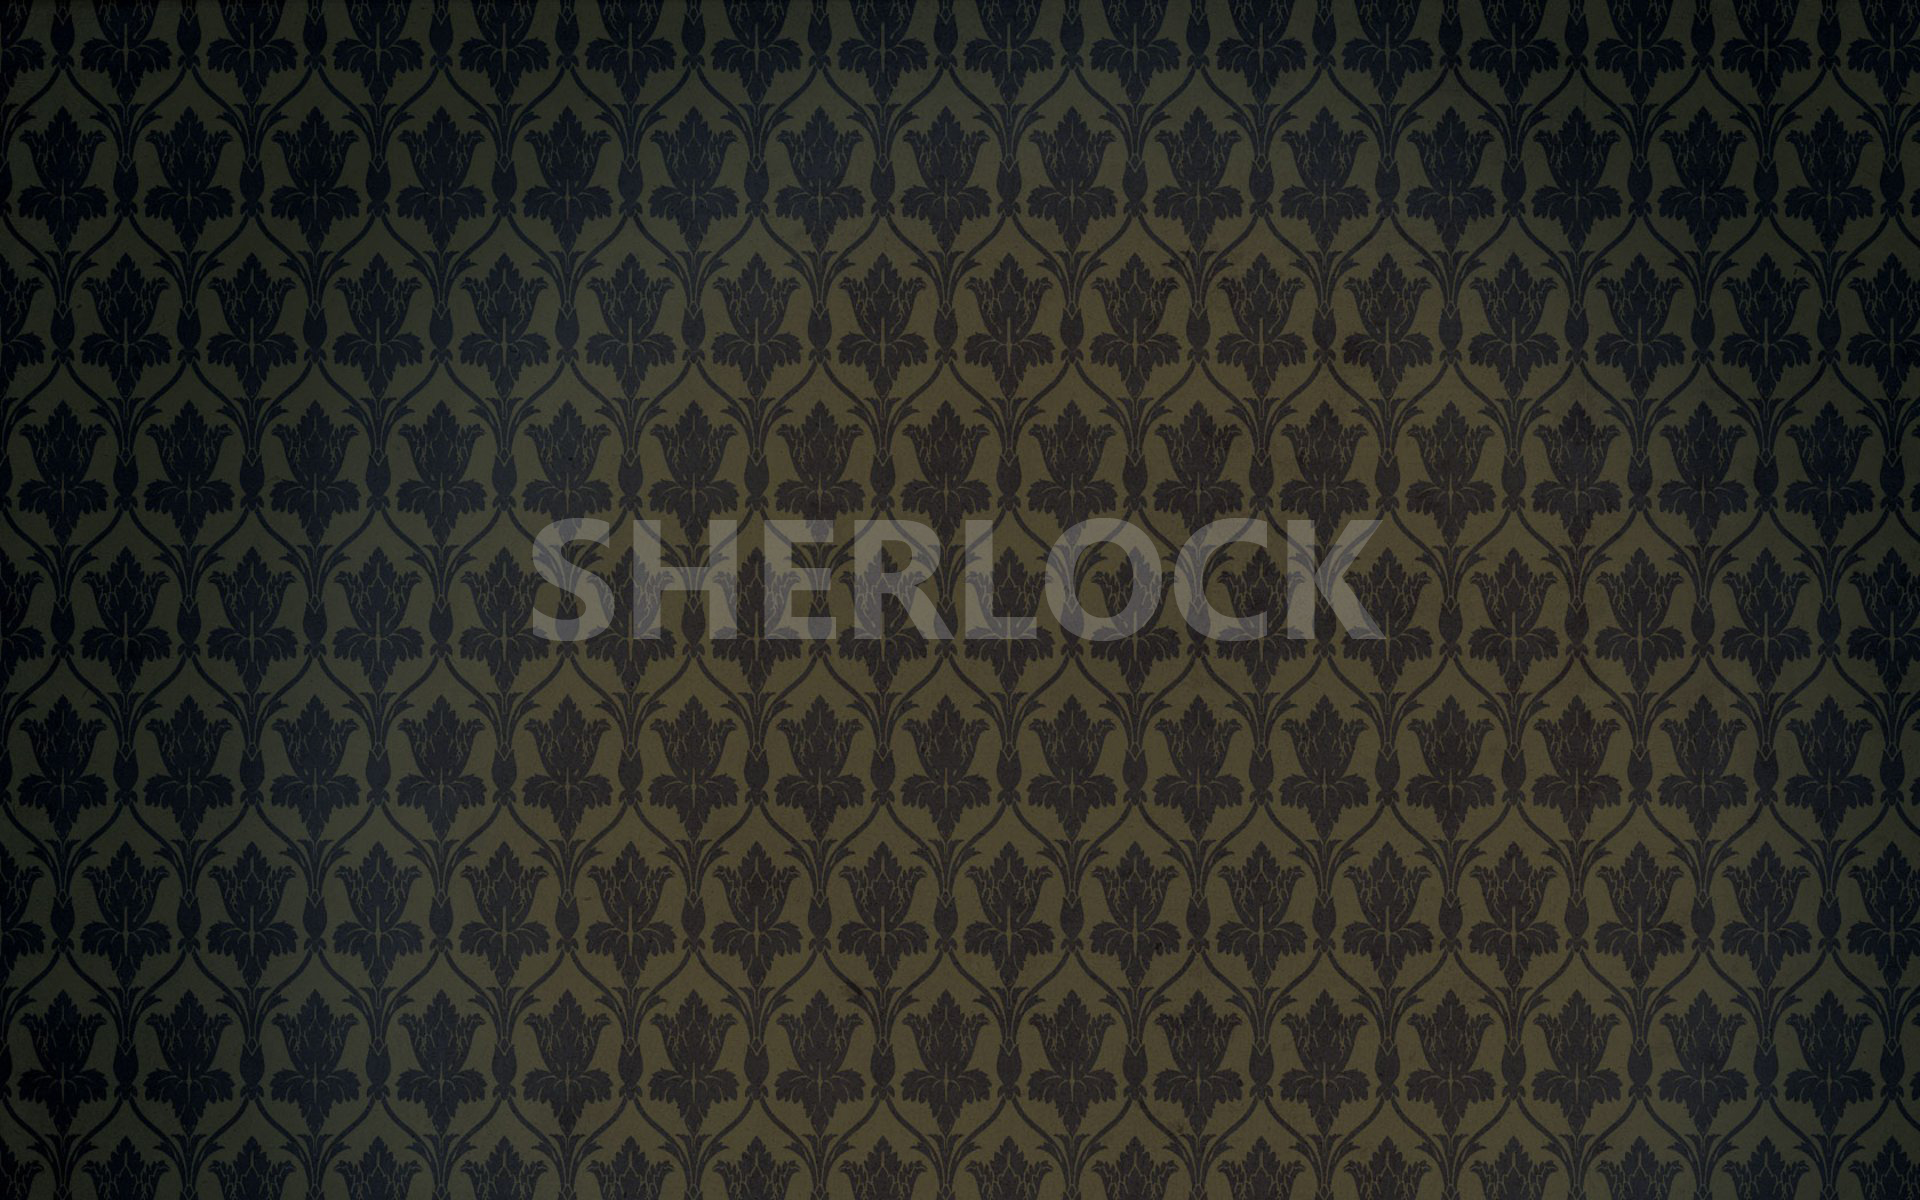 Moriarty Quotes Wallpaper Sherlock Holmes Movie Wallpapers Pixelstalk Net